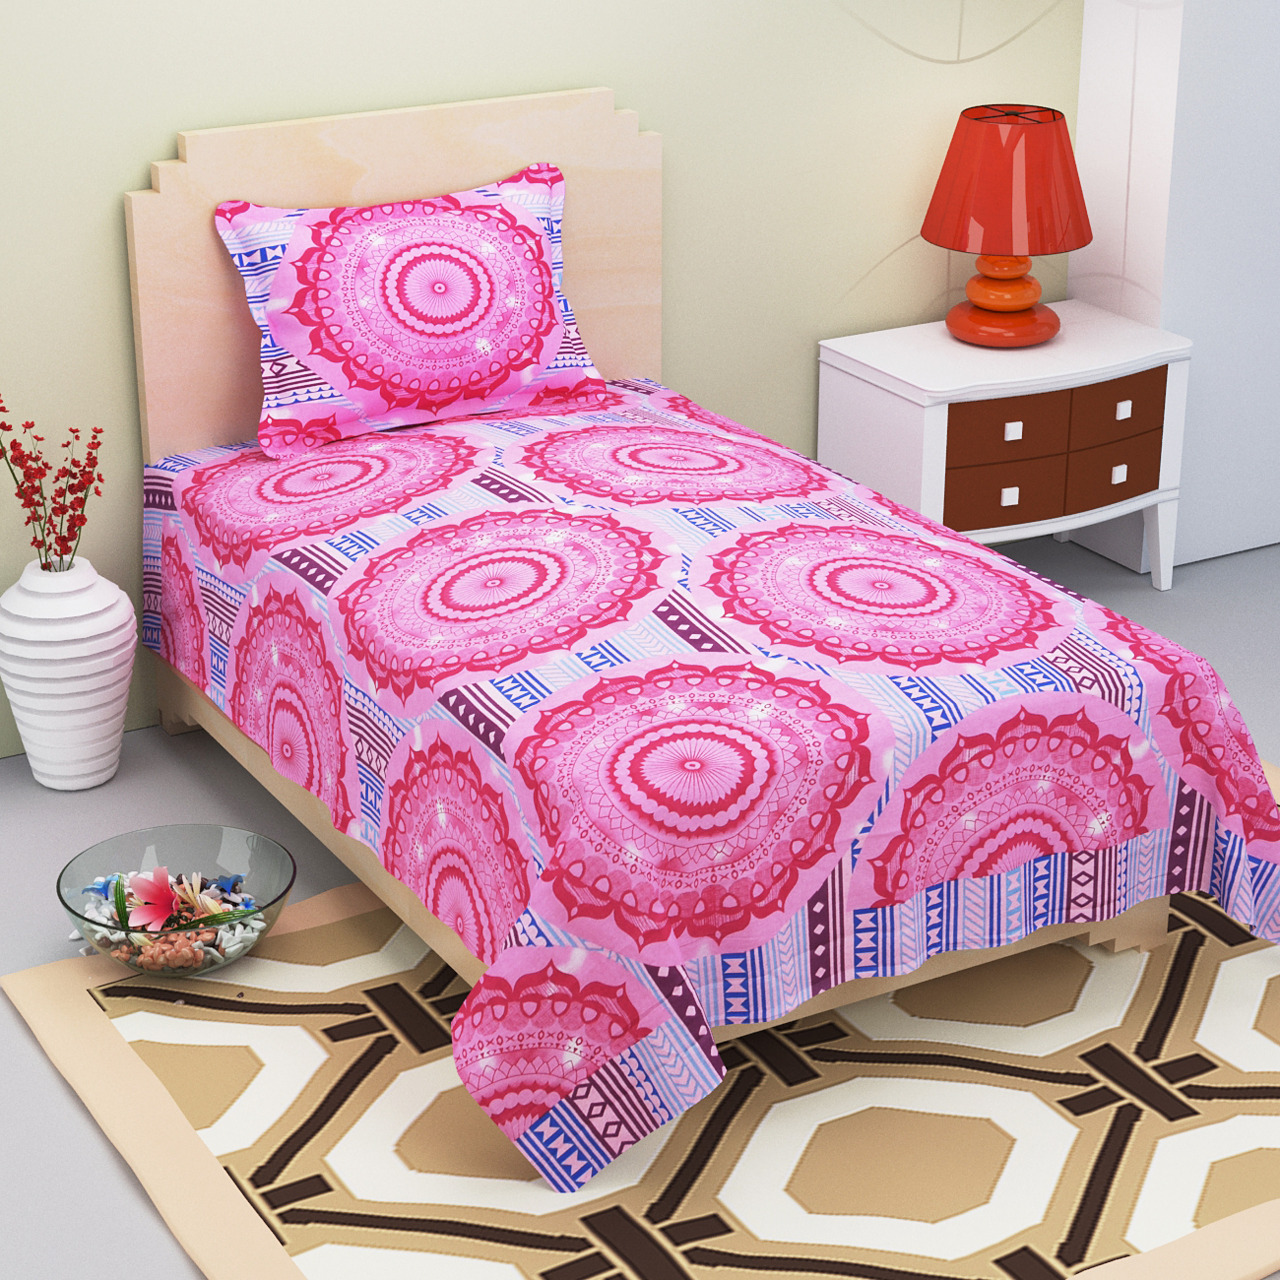 AKR CREATION COTTON SINGLE Bedsheet king size 90 Inch X 60 Inch  (1 SINGLE Bedsheet, 1 Pillow Cover)